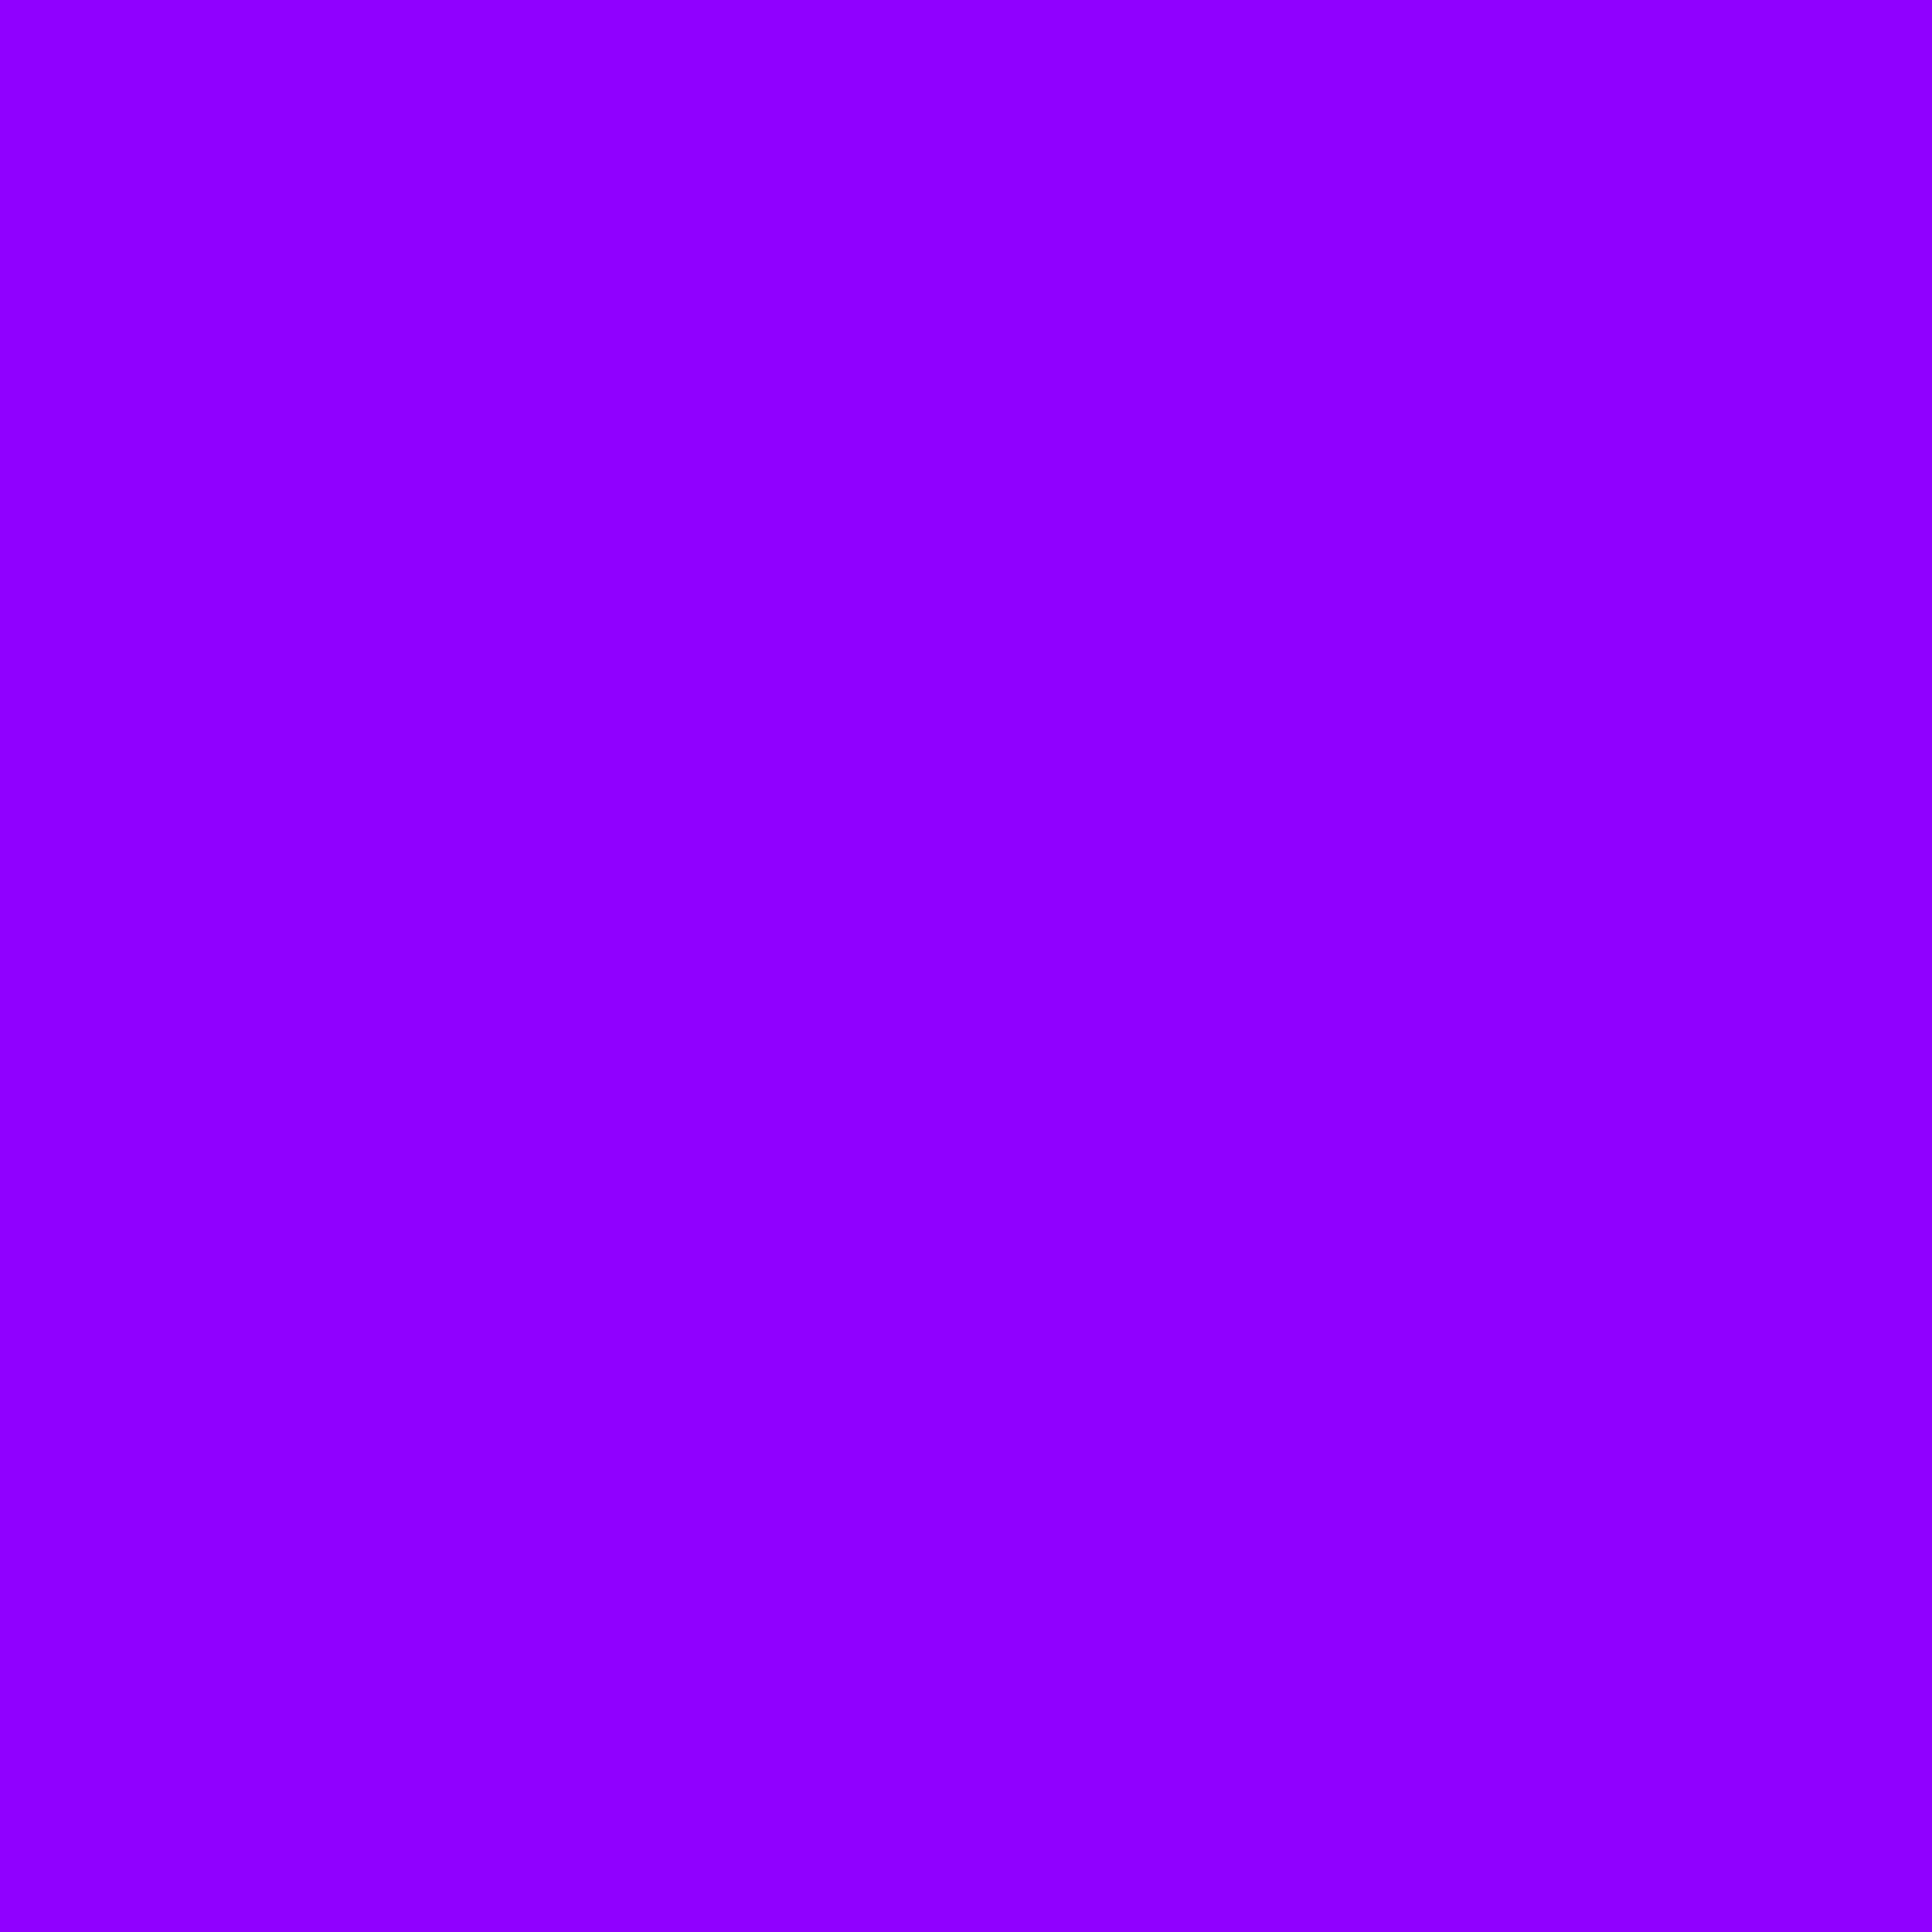 3600x3600 Electric Violet Solid Color Background